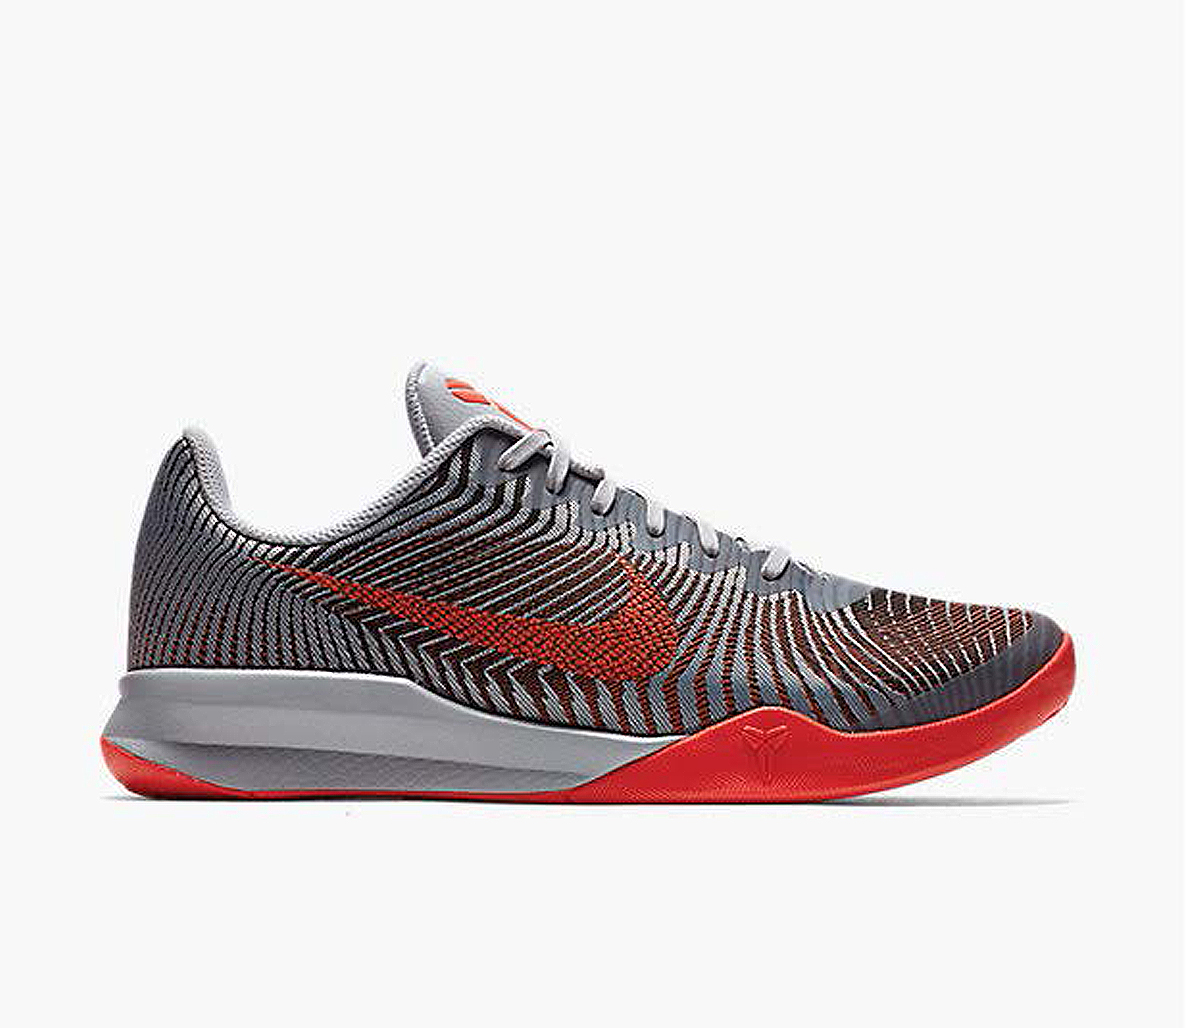 nike shoes soccer mentality defined fitness 833936